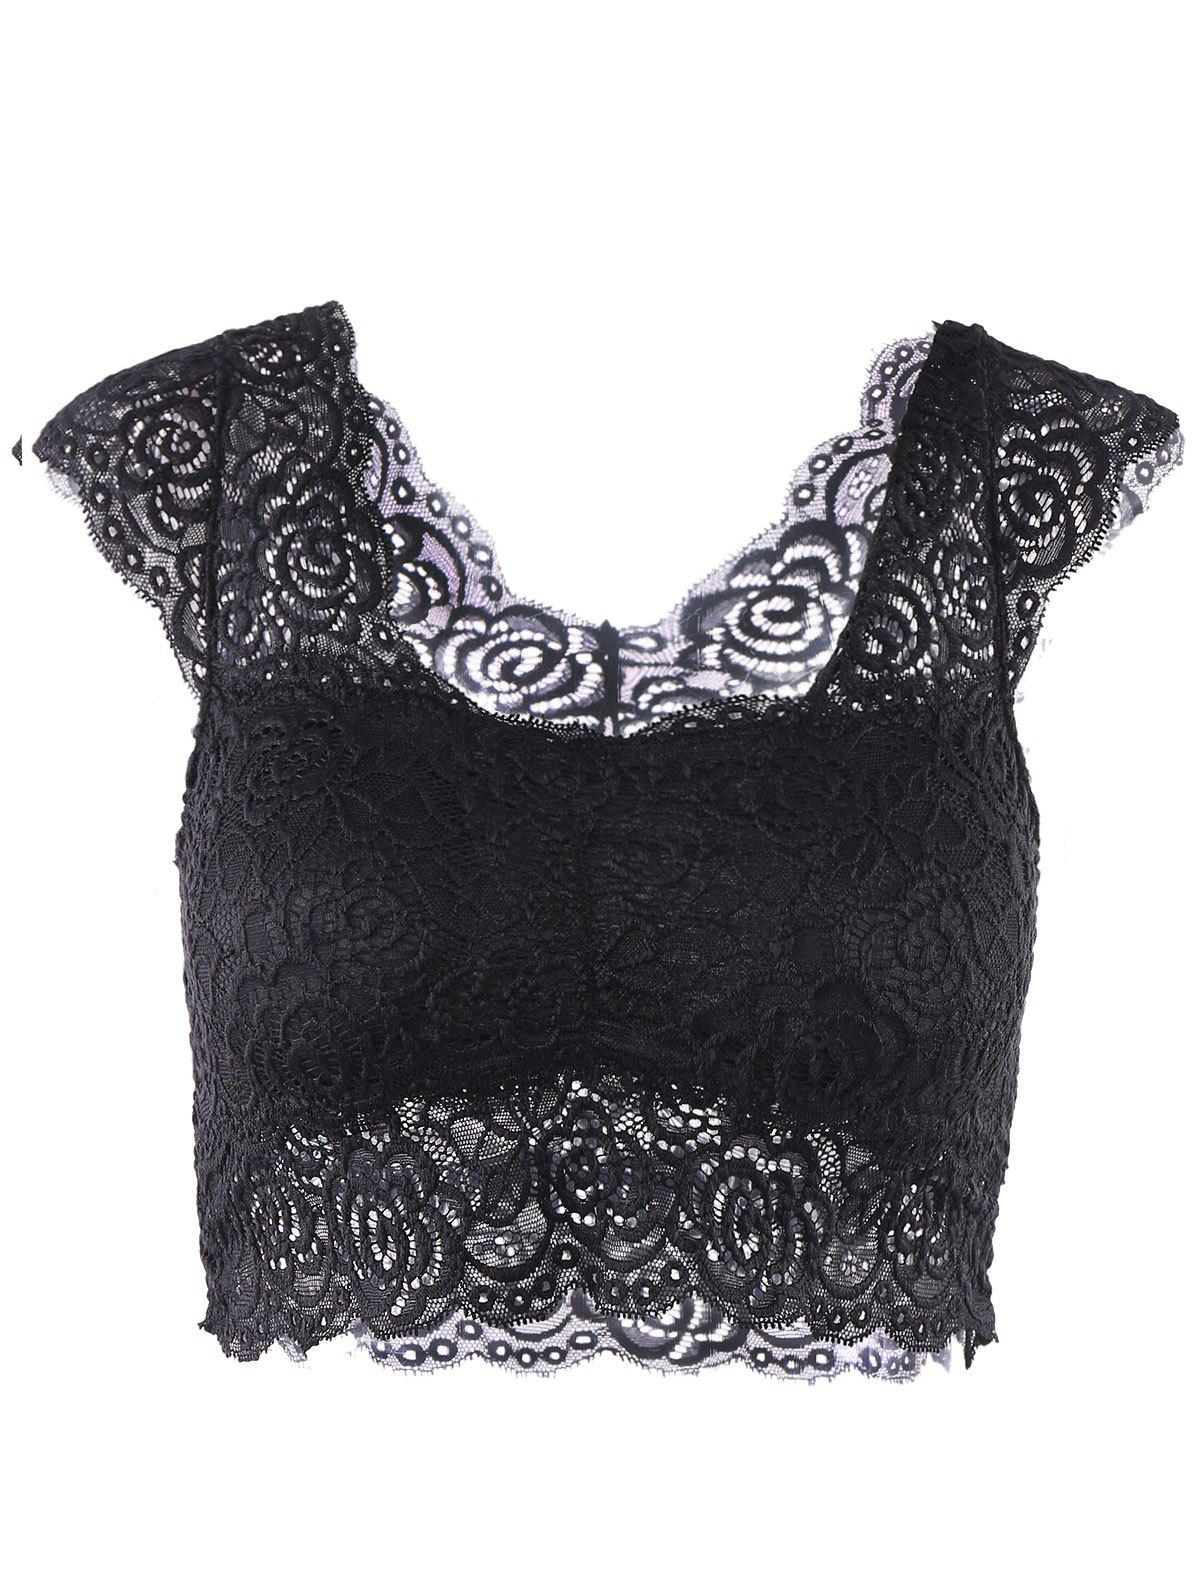 Fashionable Sweetheart Neck Solid Color Lace Women's Tank Top - BLACK ONE SIZE(FIT SIZE XS TO M)